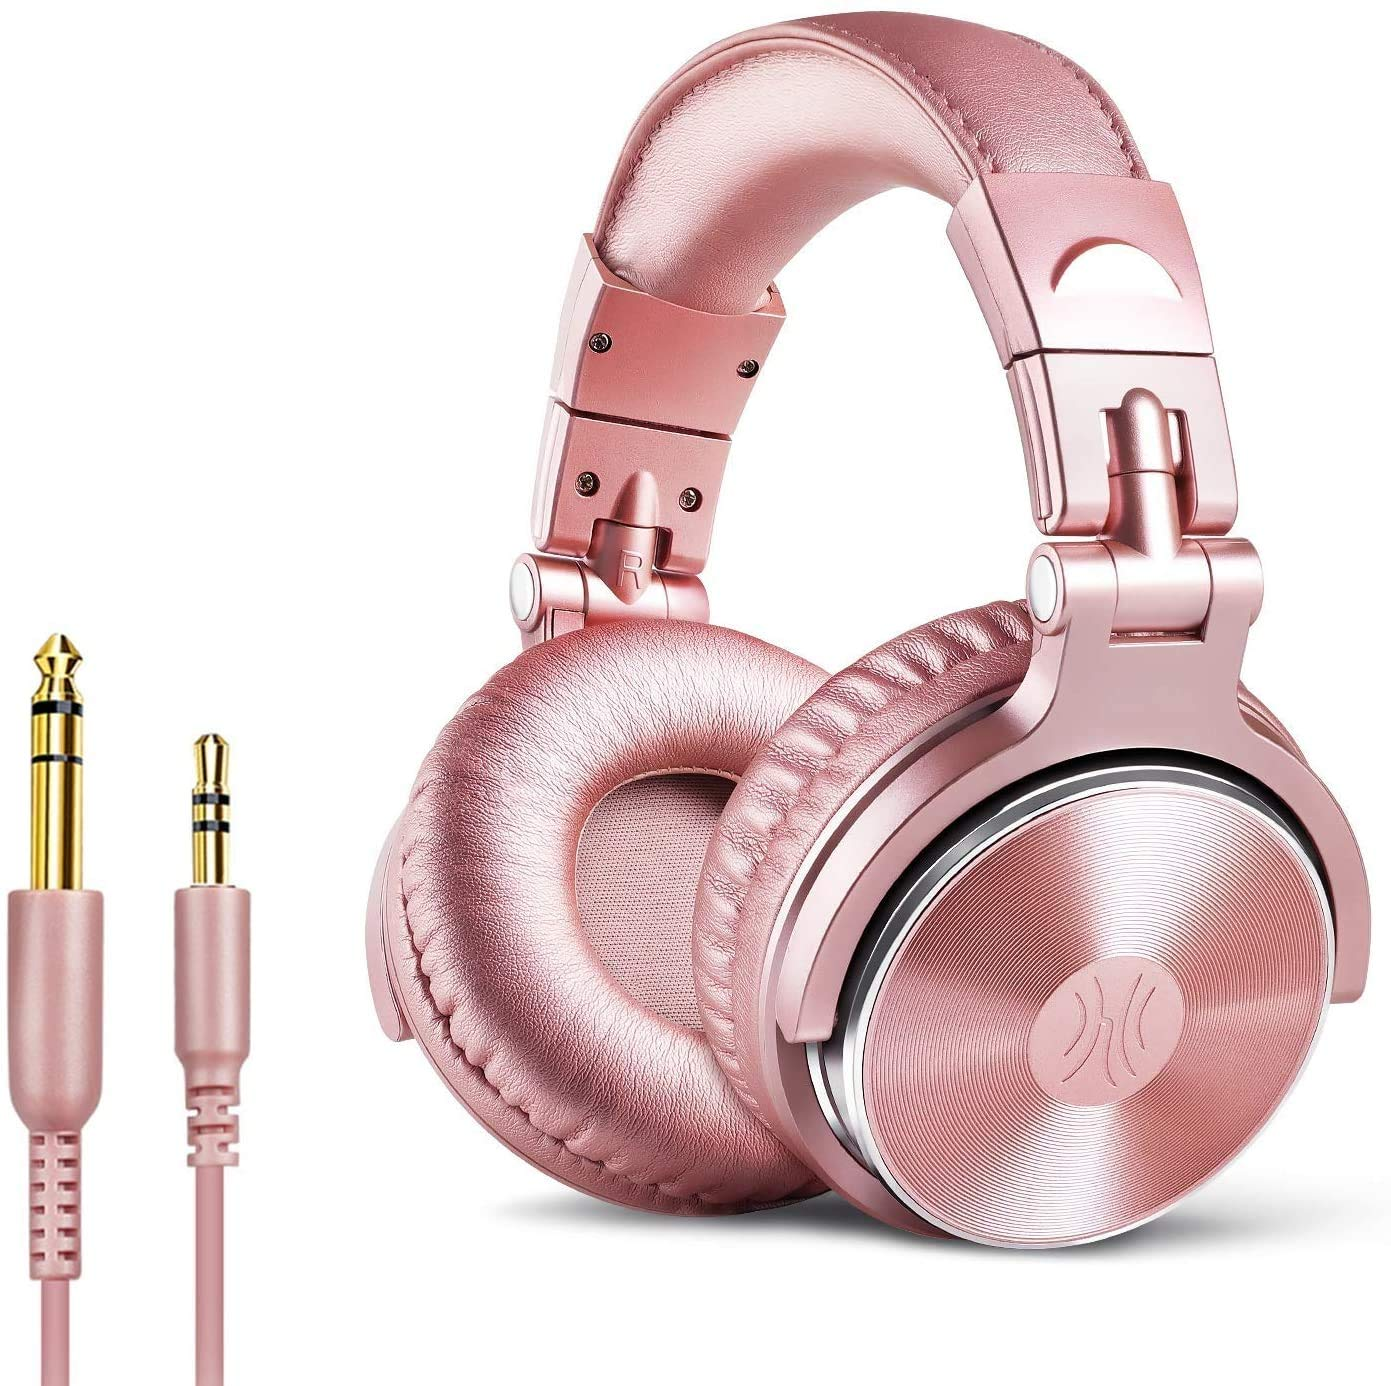 OneOdio Over Ear Headphone Studio Wired Bass Headsets with 50mm Driver, Foldable Lightweight Headphones with Shareport and Mic for DJ Recording Monitoring Mixing Podcast Guitar PC TV (Golden Rose)